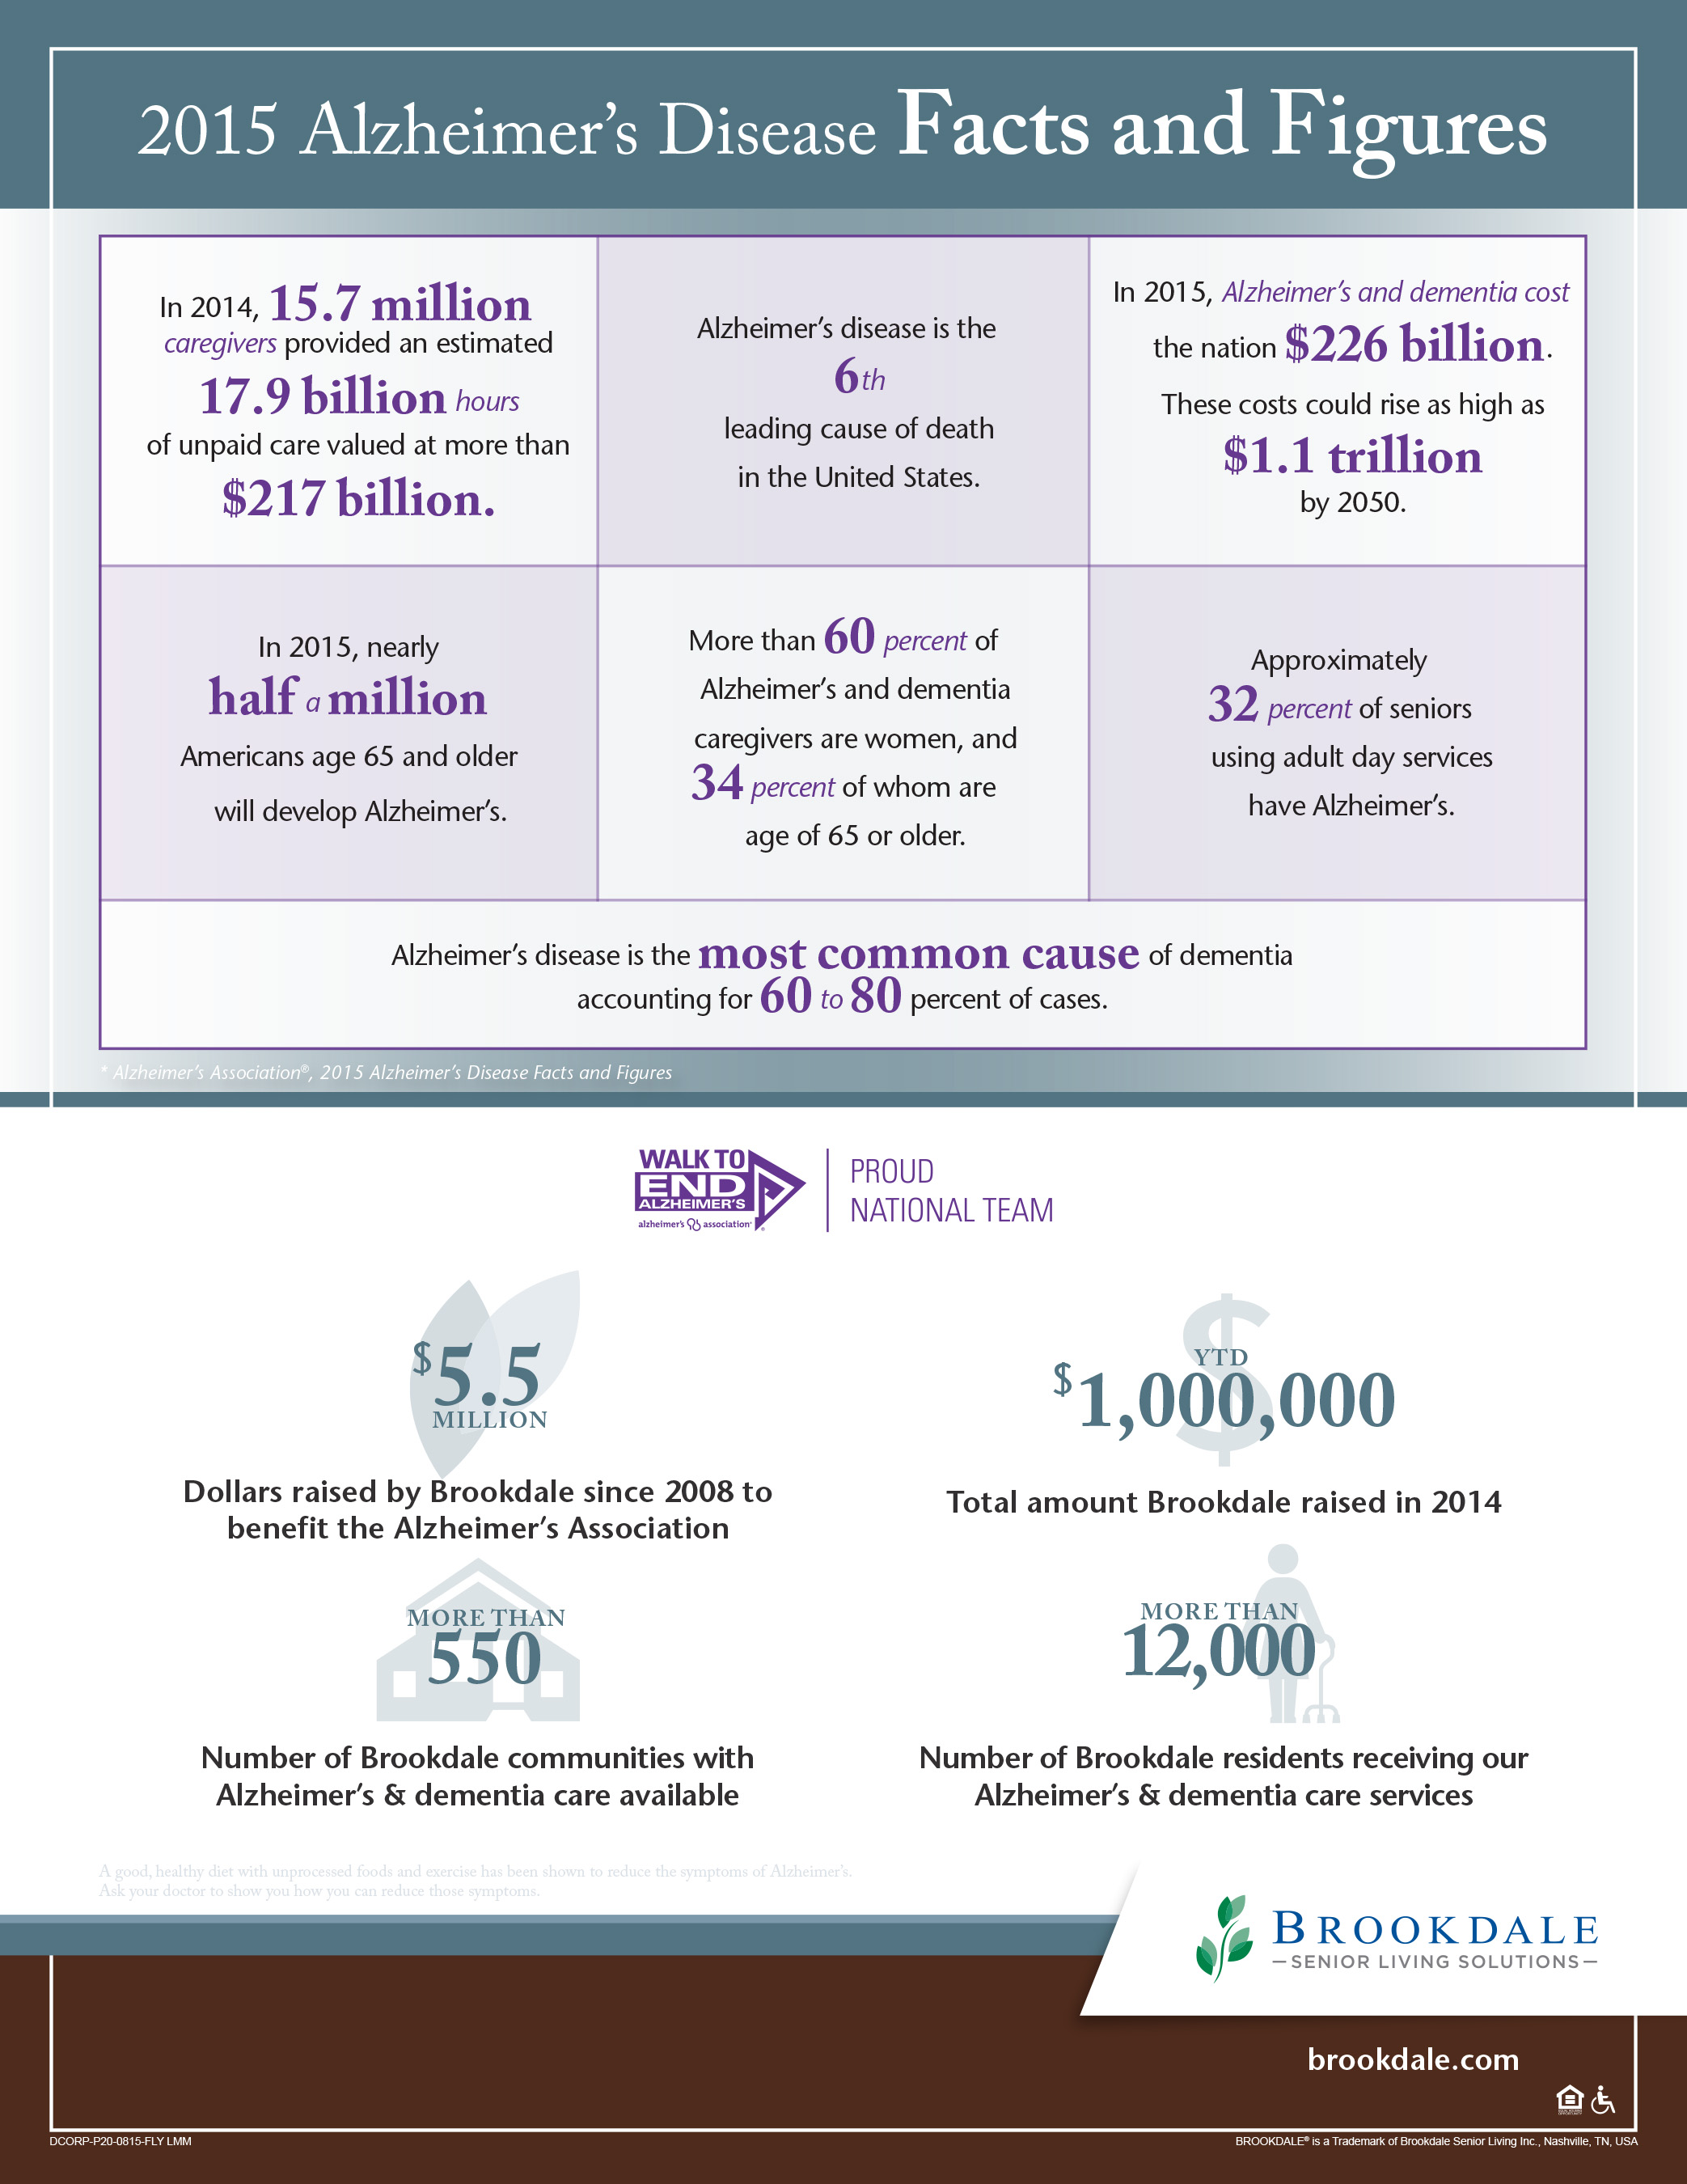 Alzheimer's Facts & Figures Infographic